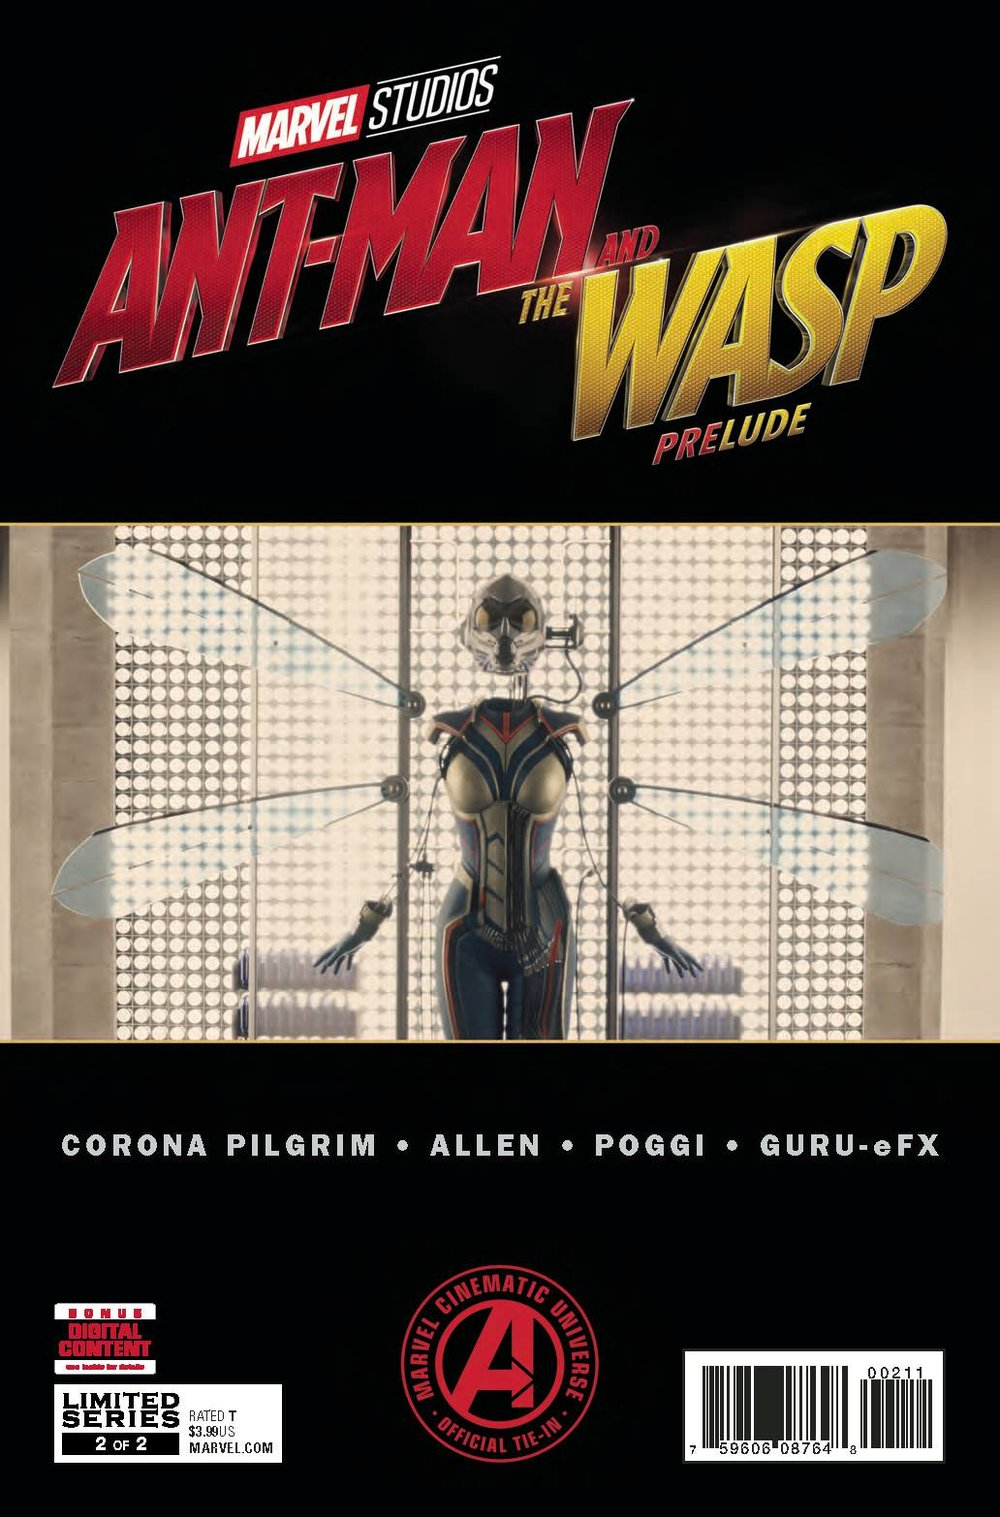 MARVELS ANT-MAN AND WASP PRELUDE 2 of 2.jpg